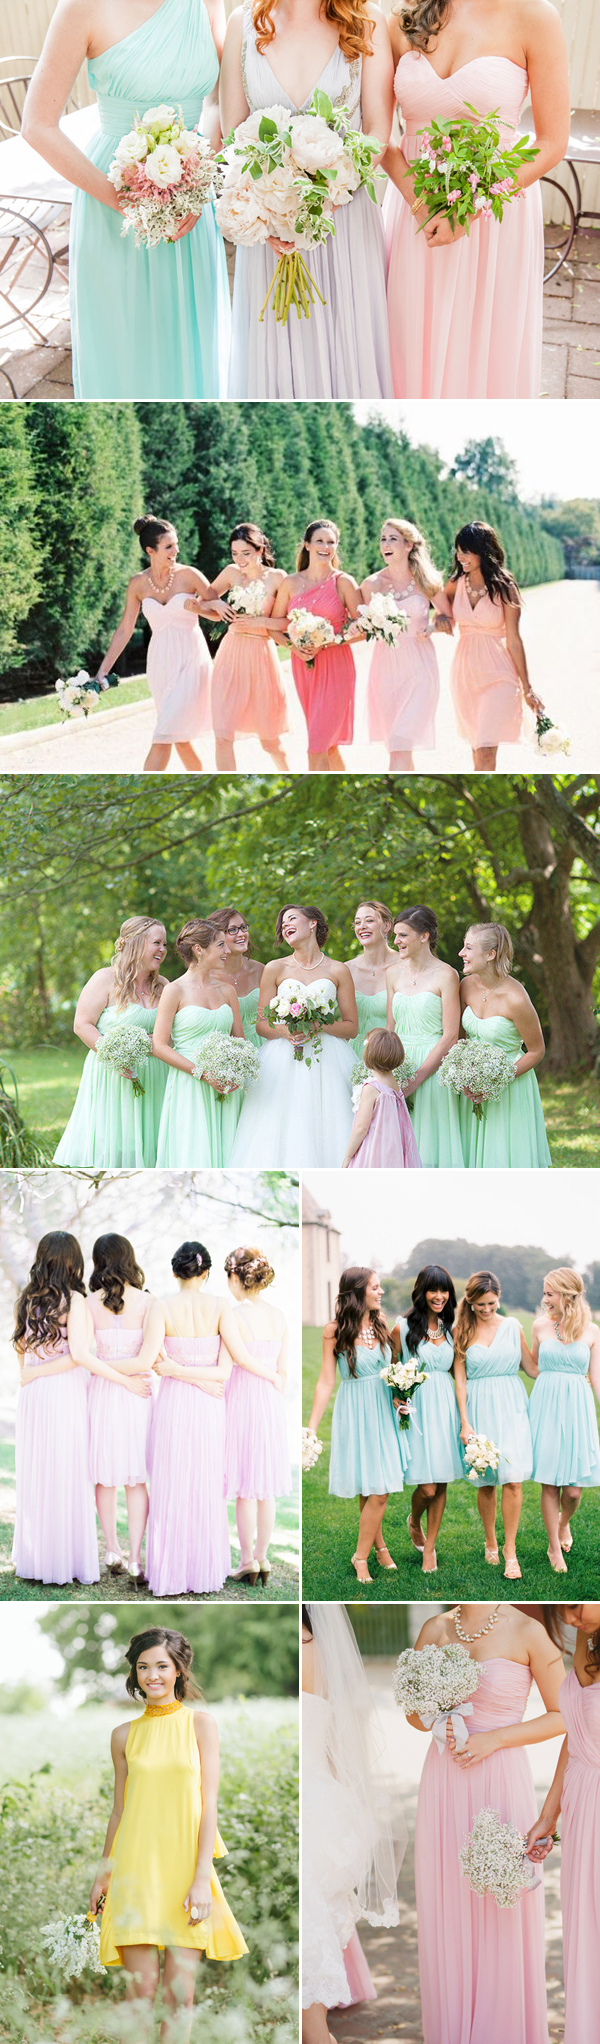 summerbridesmaid05-pastel